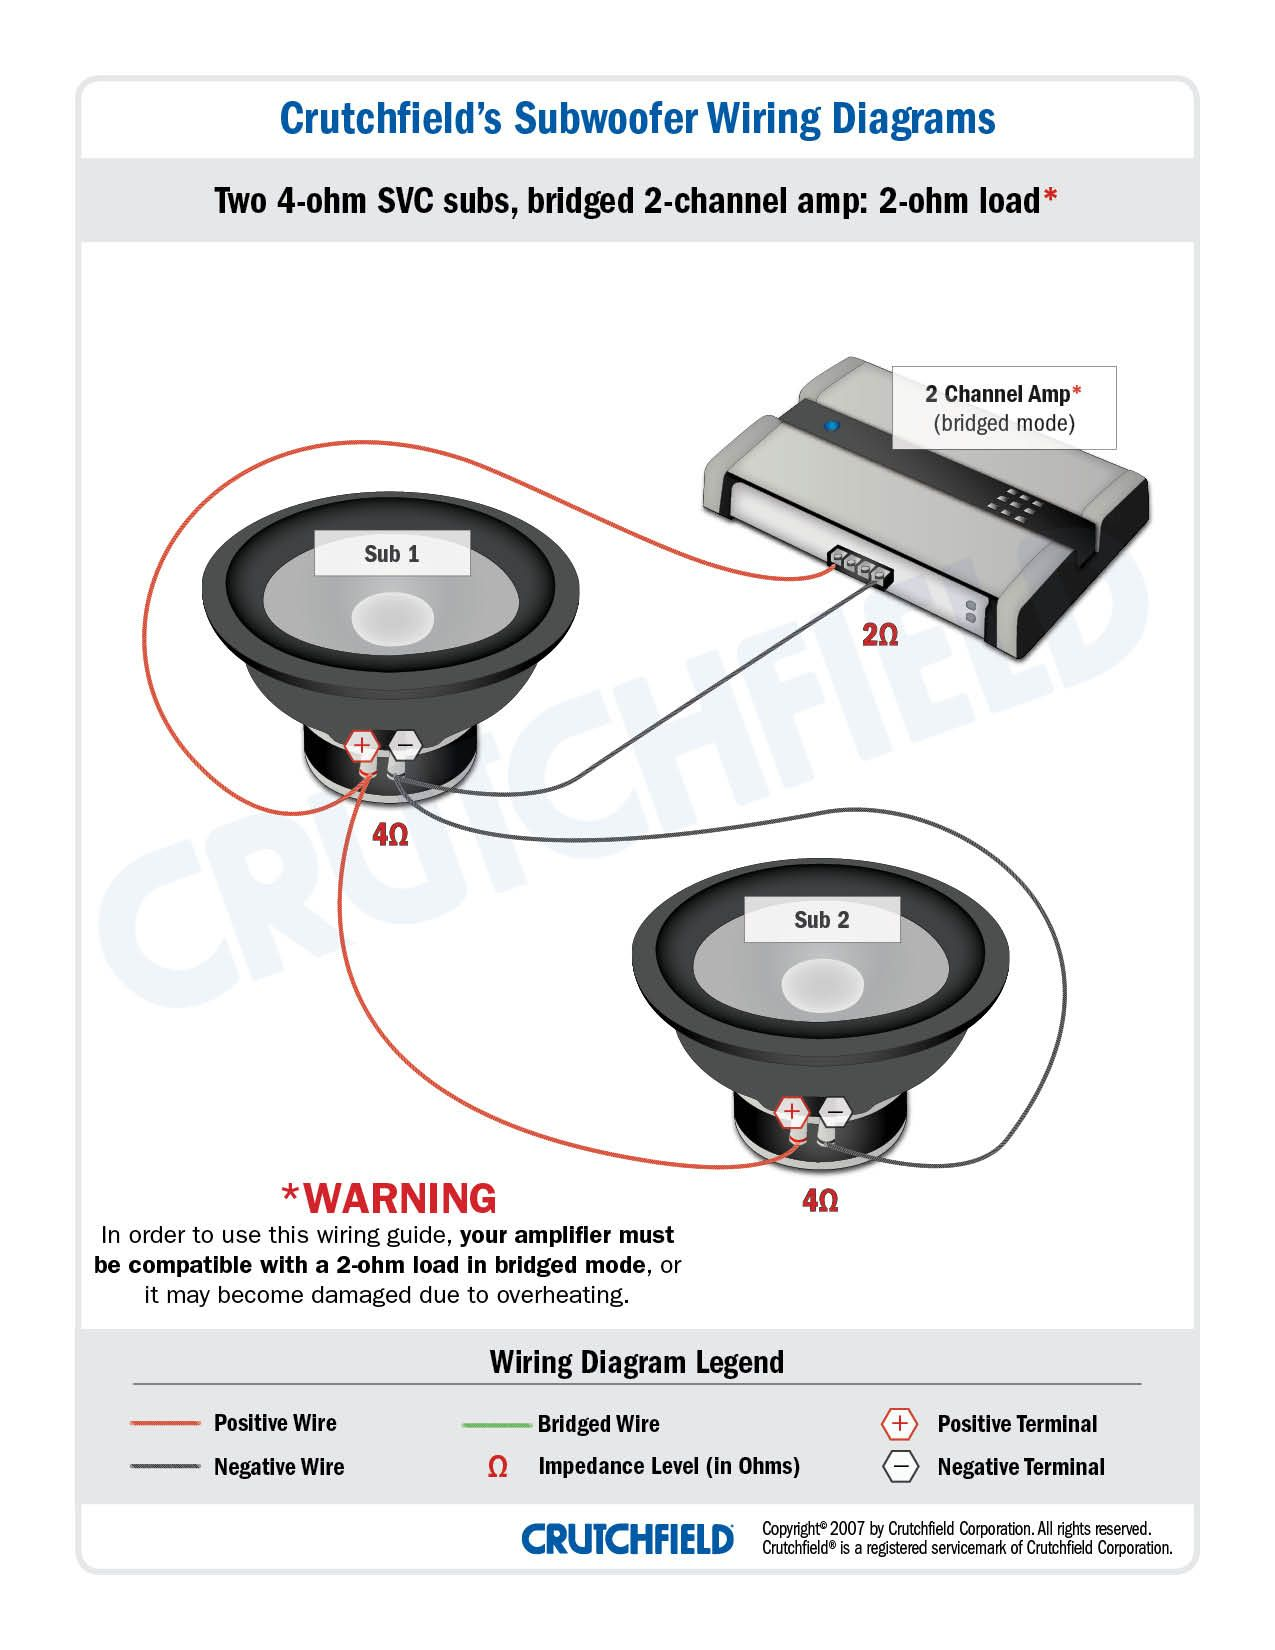 Subwoofer wiring diagrams | crafty | Car audio installation ... on 4 ohm vs 8 ohm, 4 ohm to 1 ohm, subwoofer and amp installation diagram, 4 ohm dual voice coil wiring, 4 ohm dvc wiring, 4 ohm subwoofer, 1 ohm stable wiring diagram, bridge subwoofer wiring diagram, 4 ohm stereo speakers, parts of a speaker diagram, 2 ohm wiring diagram, amplifier circuit diagram, 4 ohm sub wiring, 8 ohm wiring diagram, car speaker diagram, ohms law diagram, speakers in parallel diagram, 4 ohm to 2 ohm, 4 ohm speakers in series,